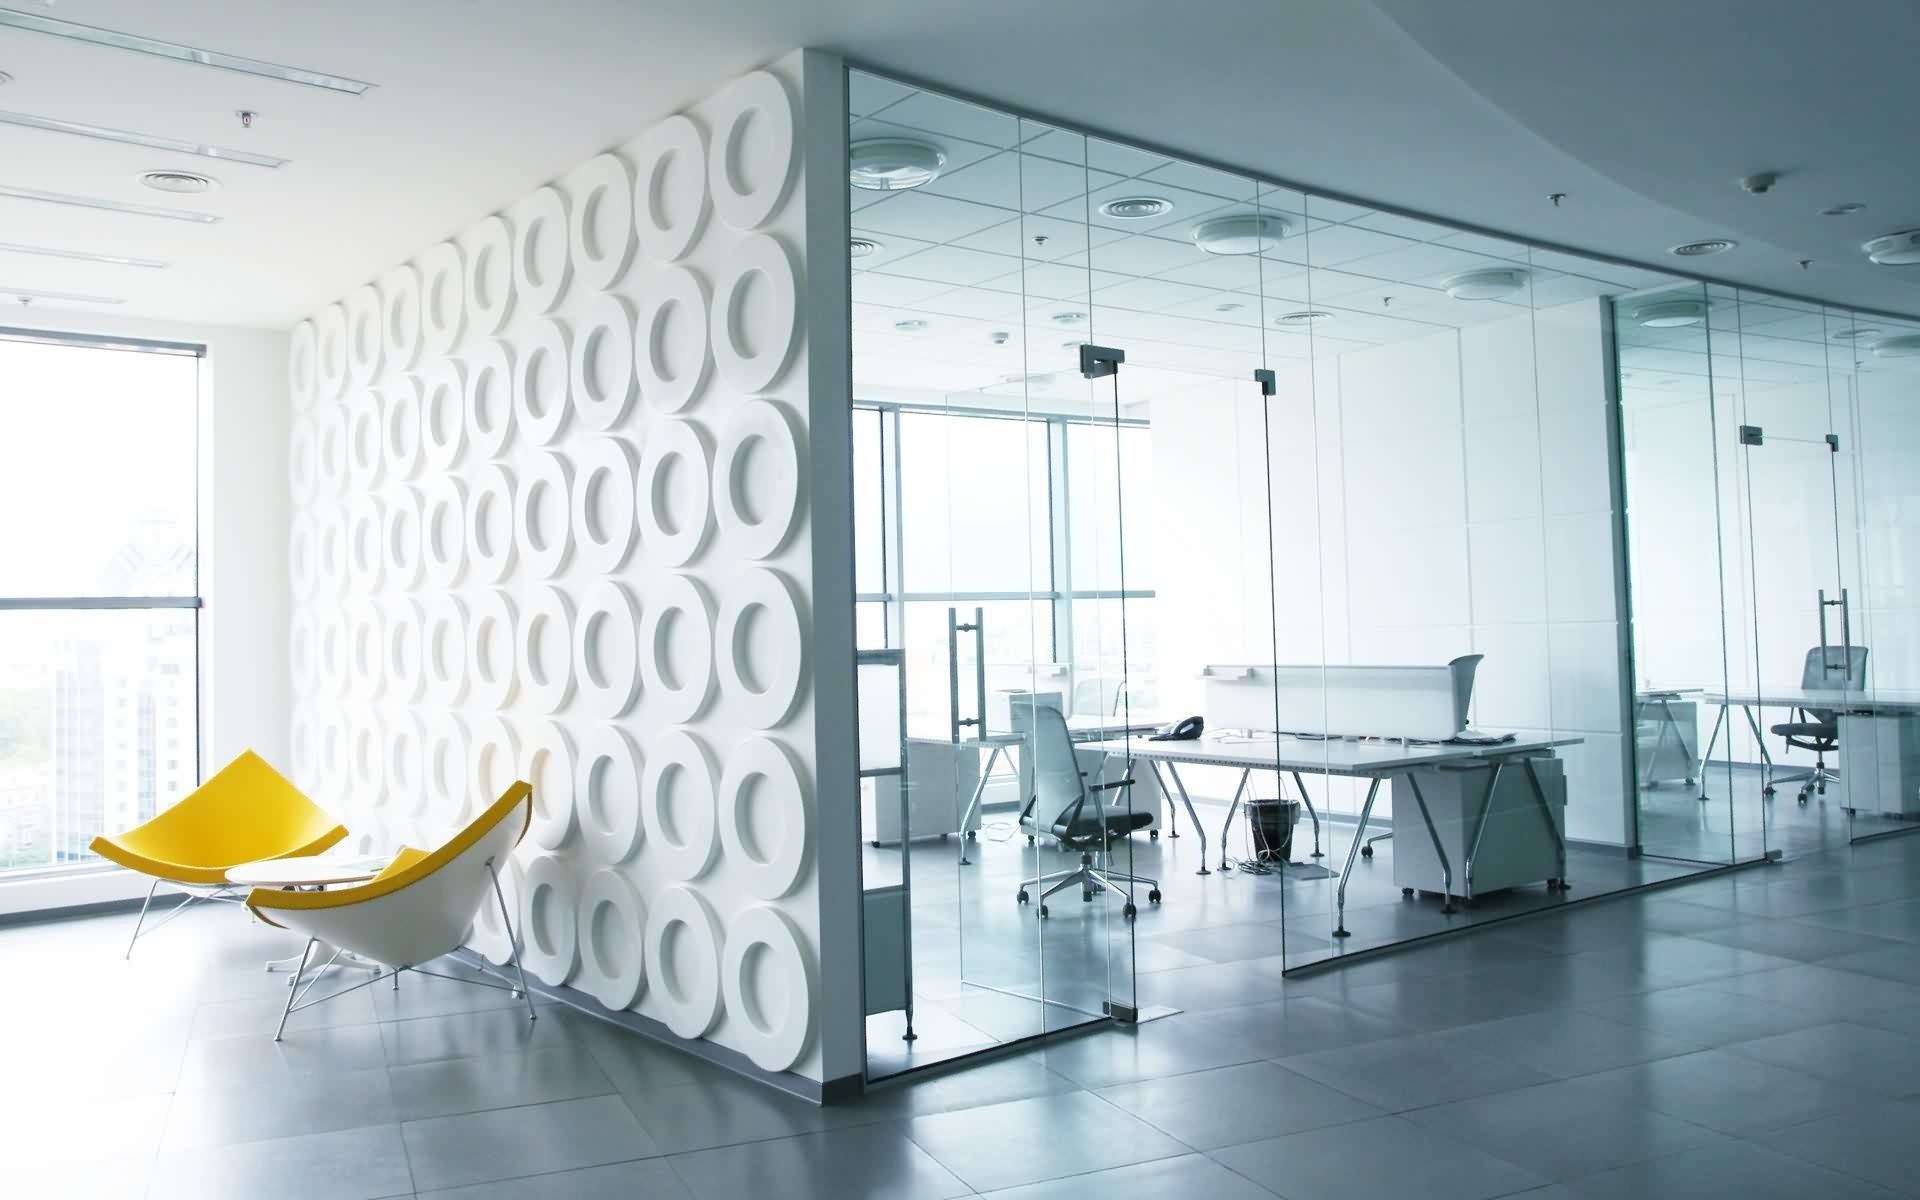 1000 images about office design on pinterest office designs offices and conference room bright office room interior